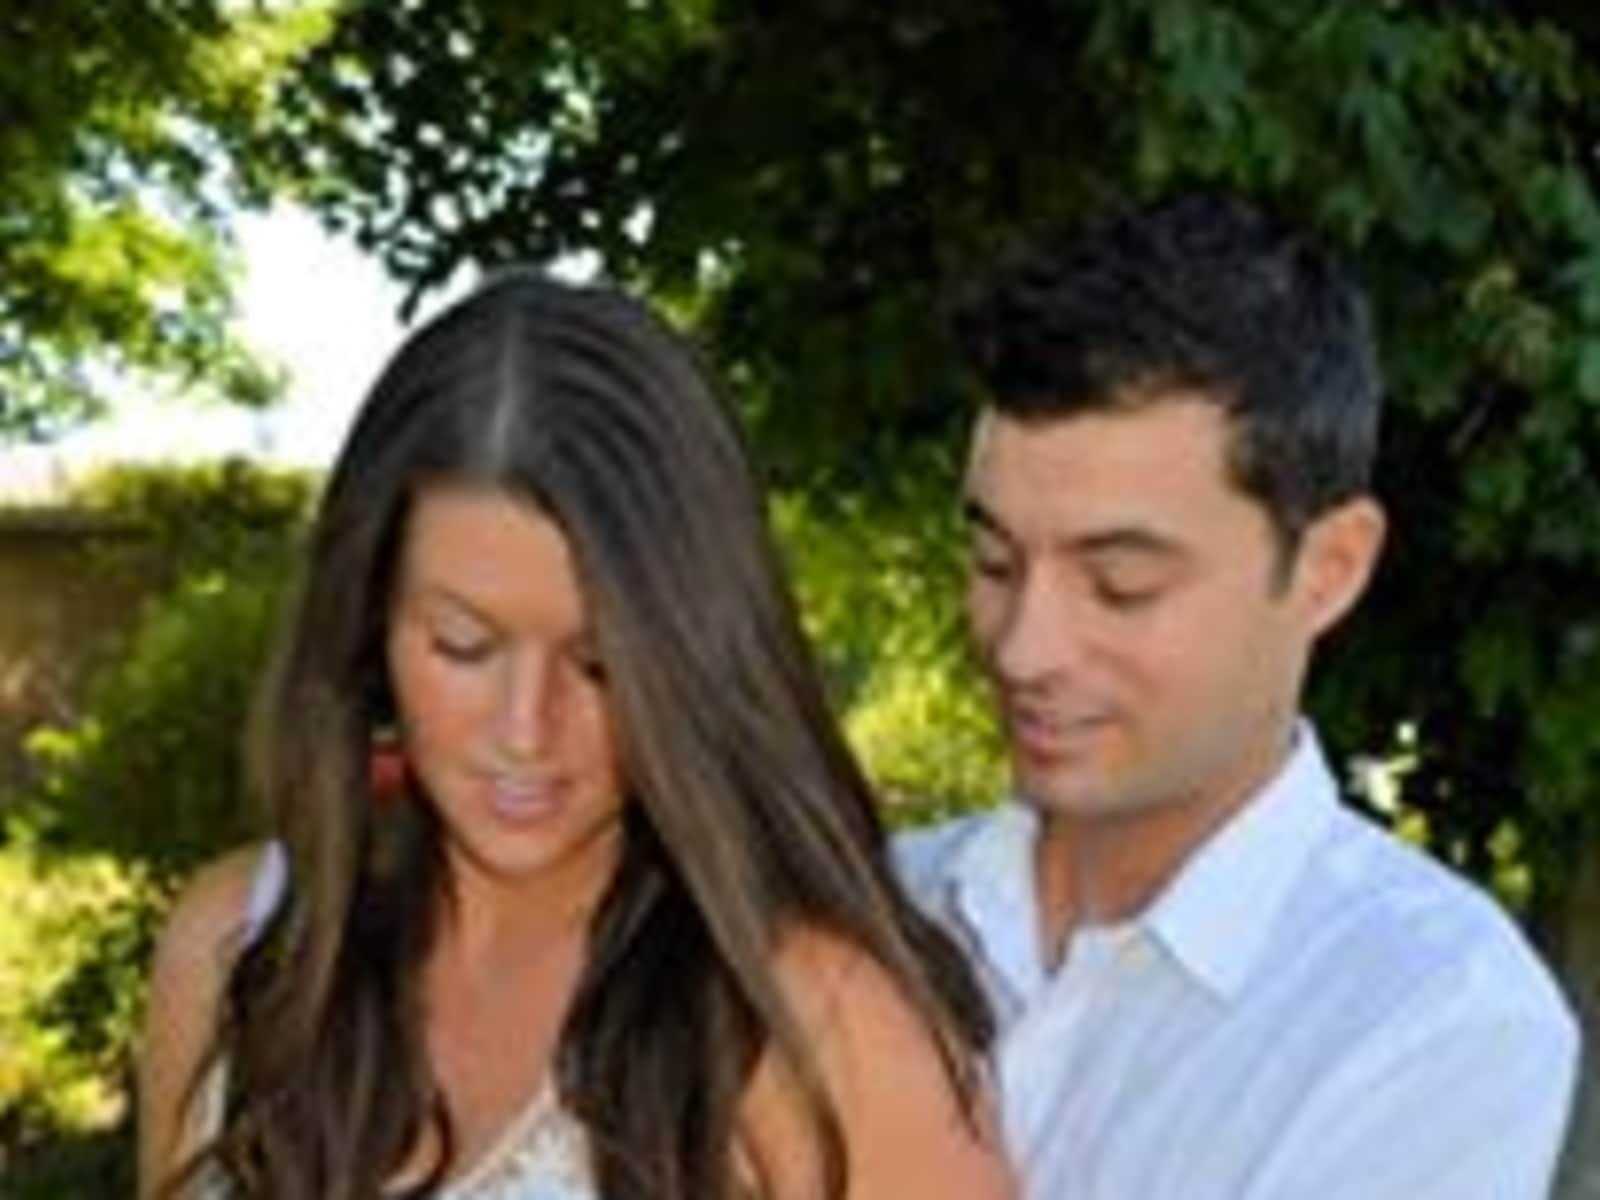 Leanne & Ben from Carleton Place, Ontario, Canada